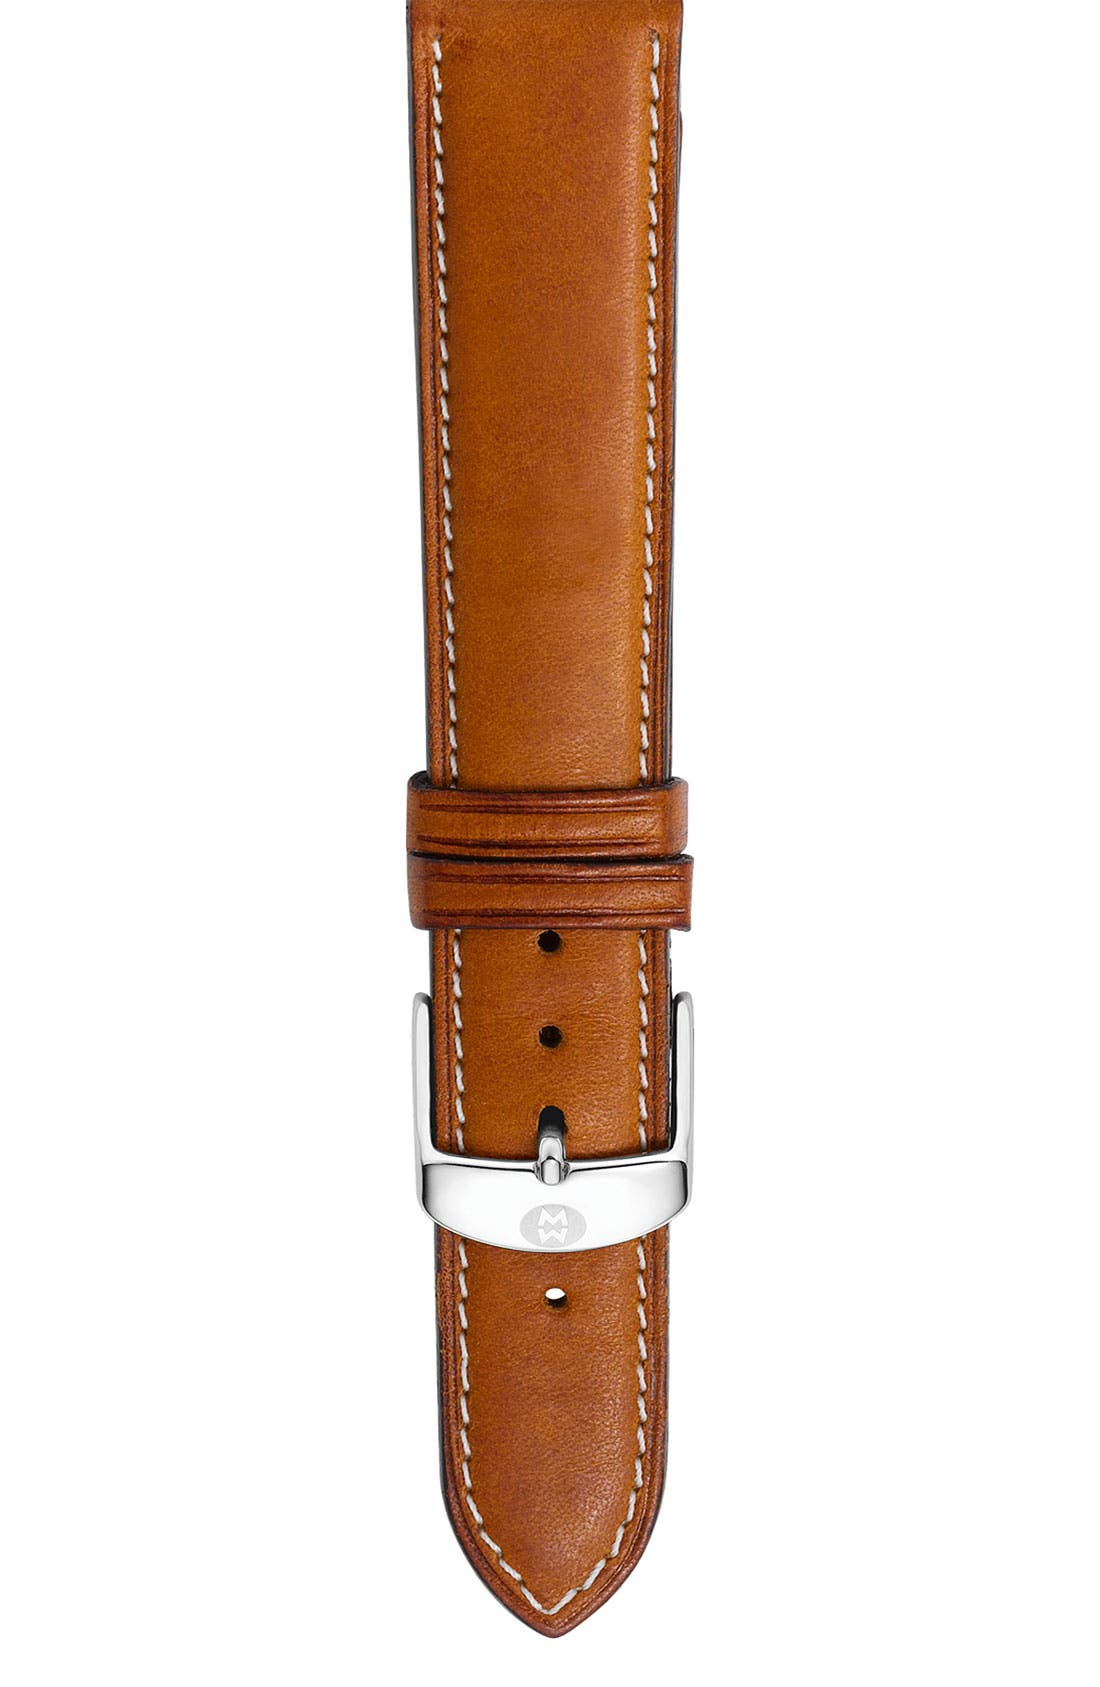 Alternate Image 1 Selected - MICHELE 16mm Calfskin Leather Watch Strap